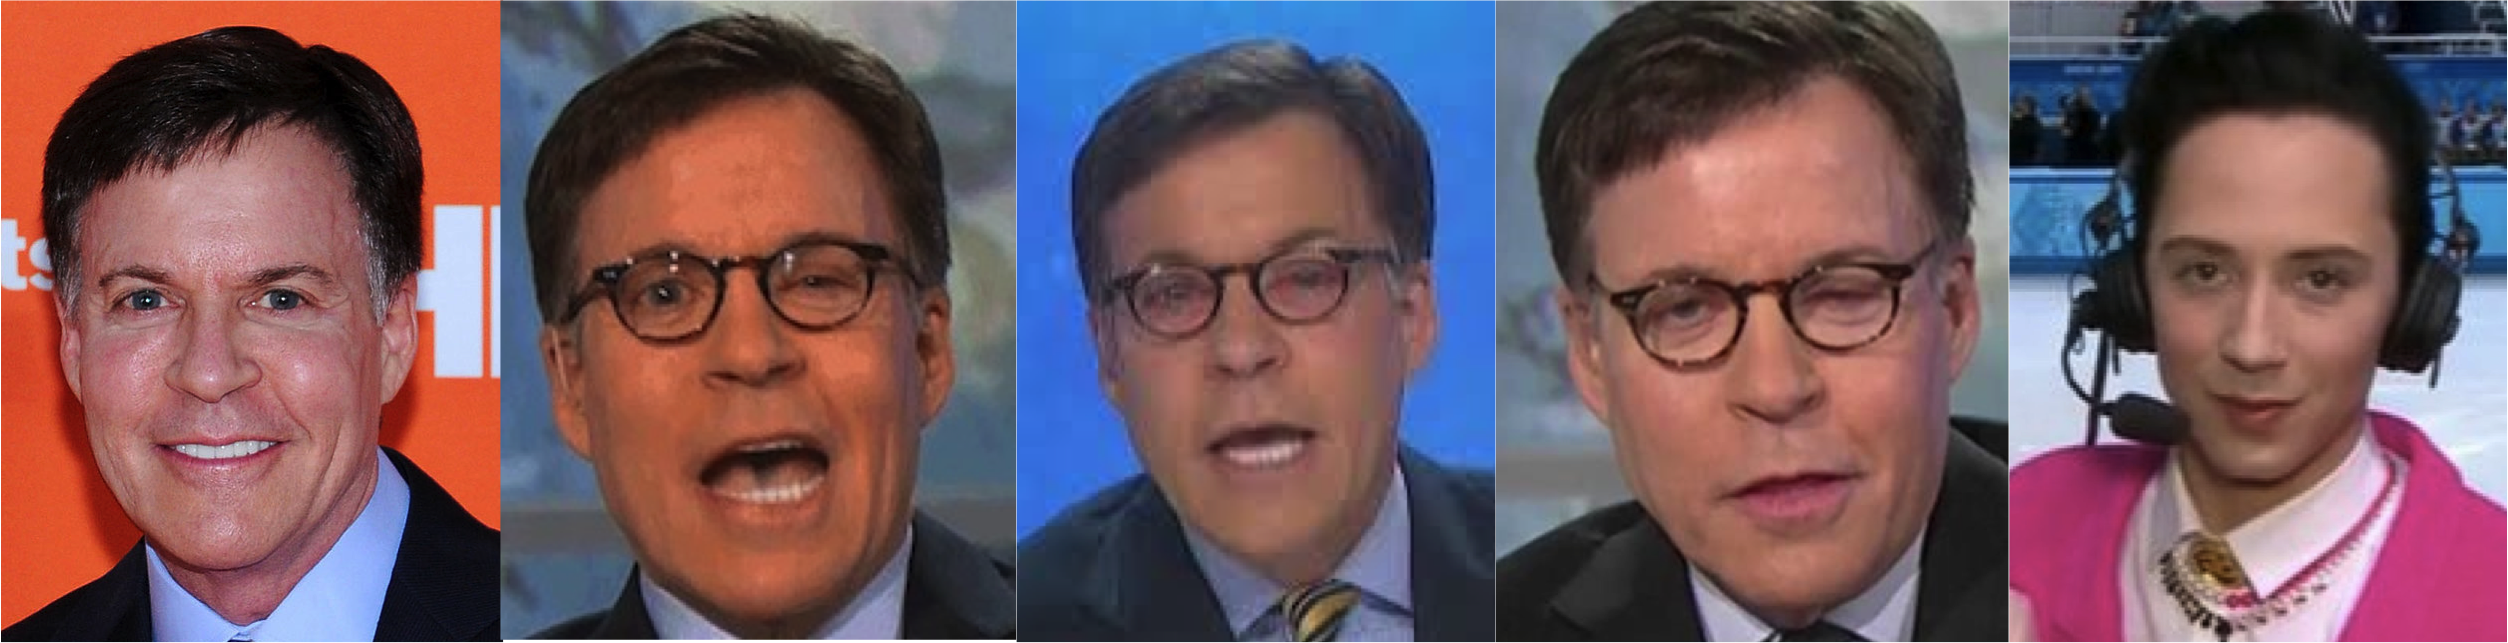 Bob costas is an annoying asshole